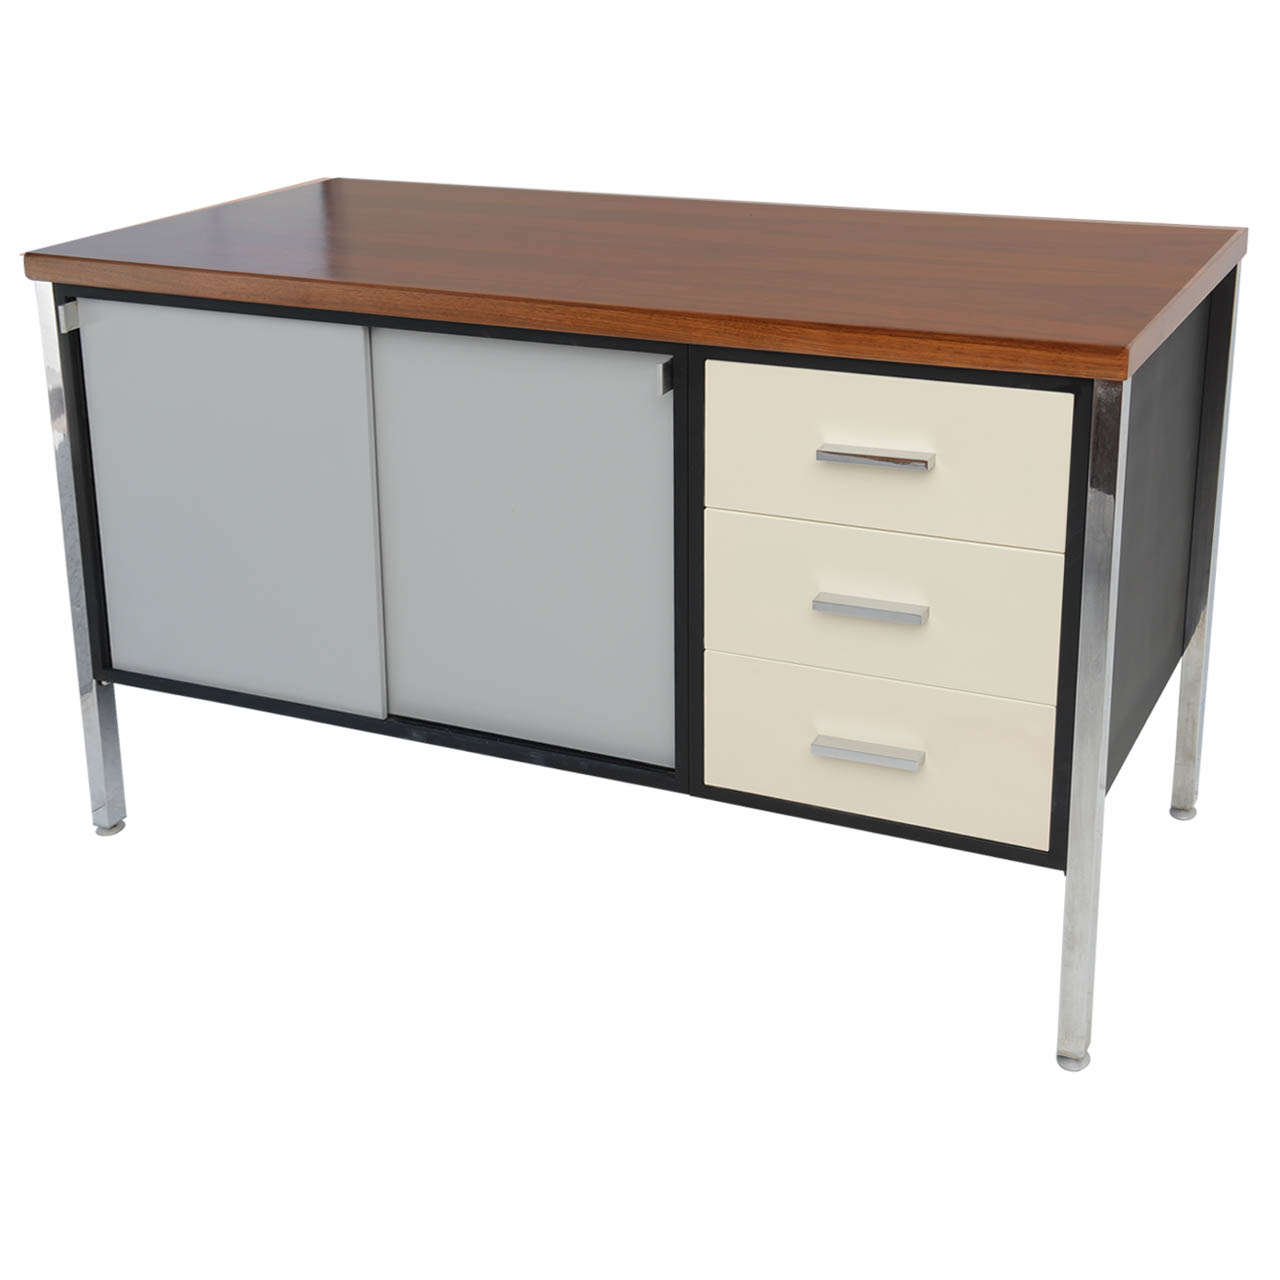 Mid Century Modern Art Metal for Knoll Credenza Office Cabinet at 1stdibs